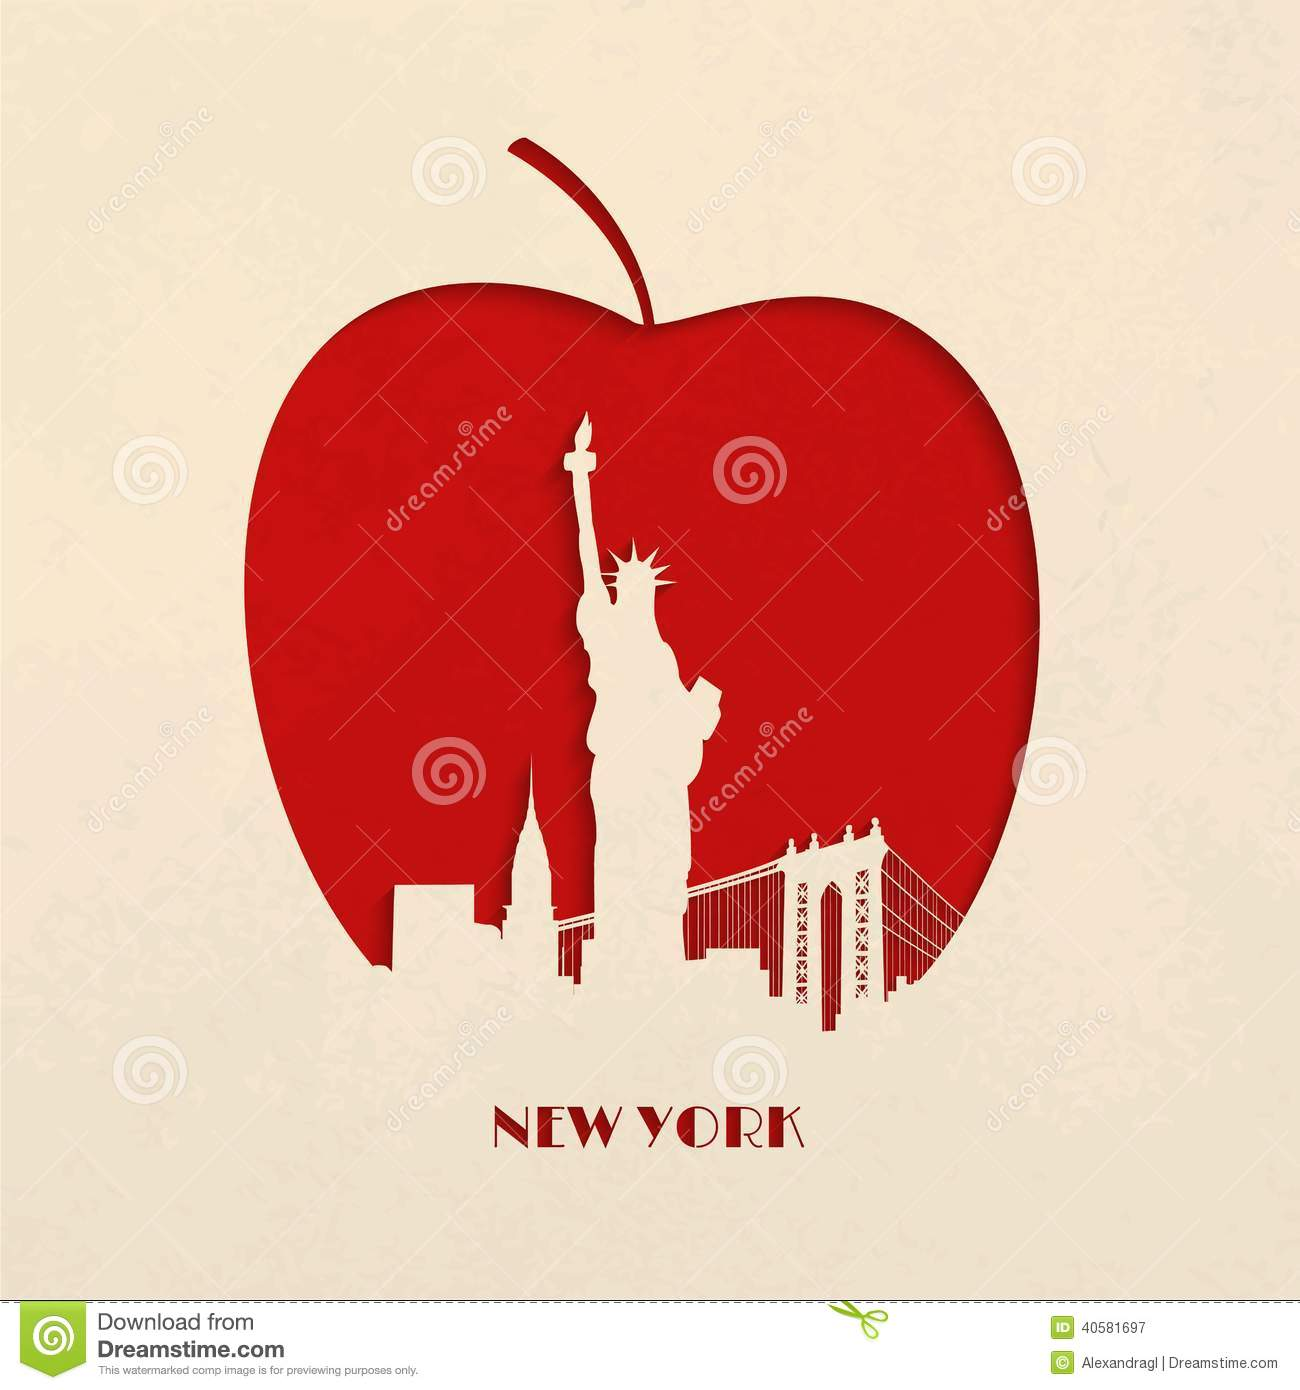 ... silhouette of New York skyline and statue of Liberty on the Big Apple